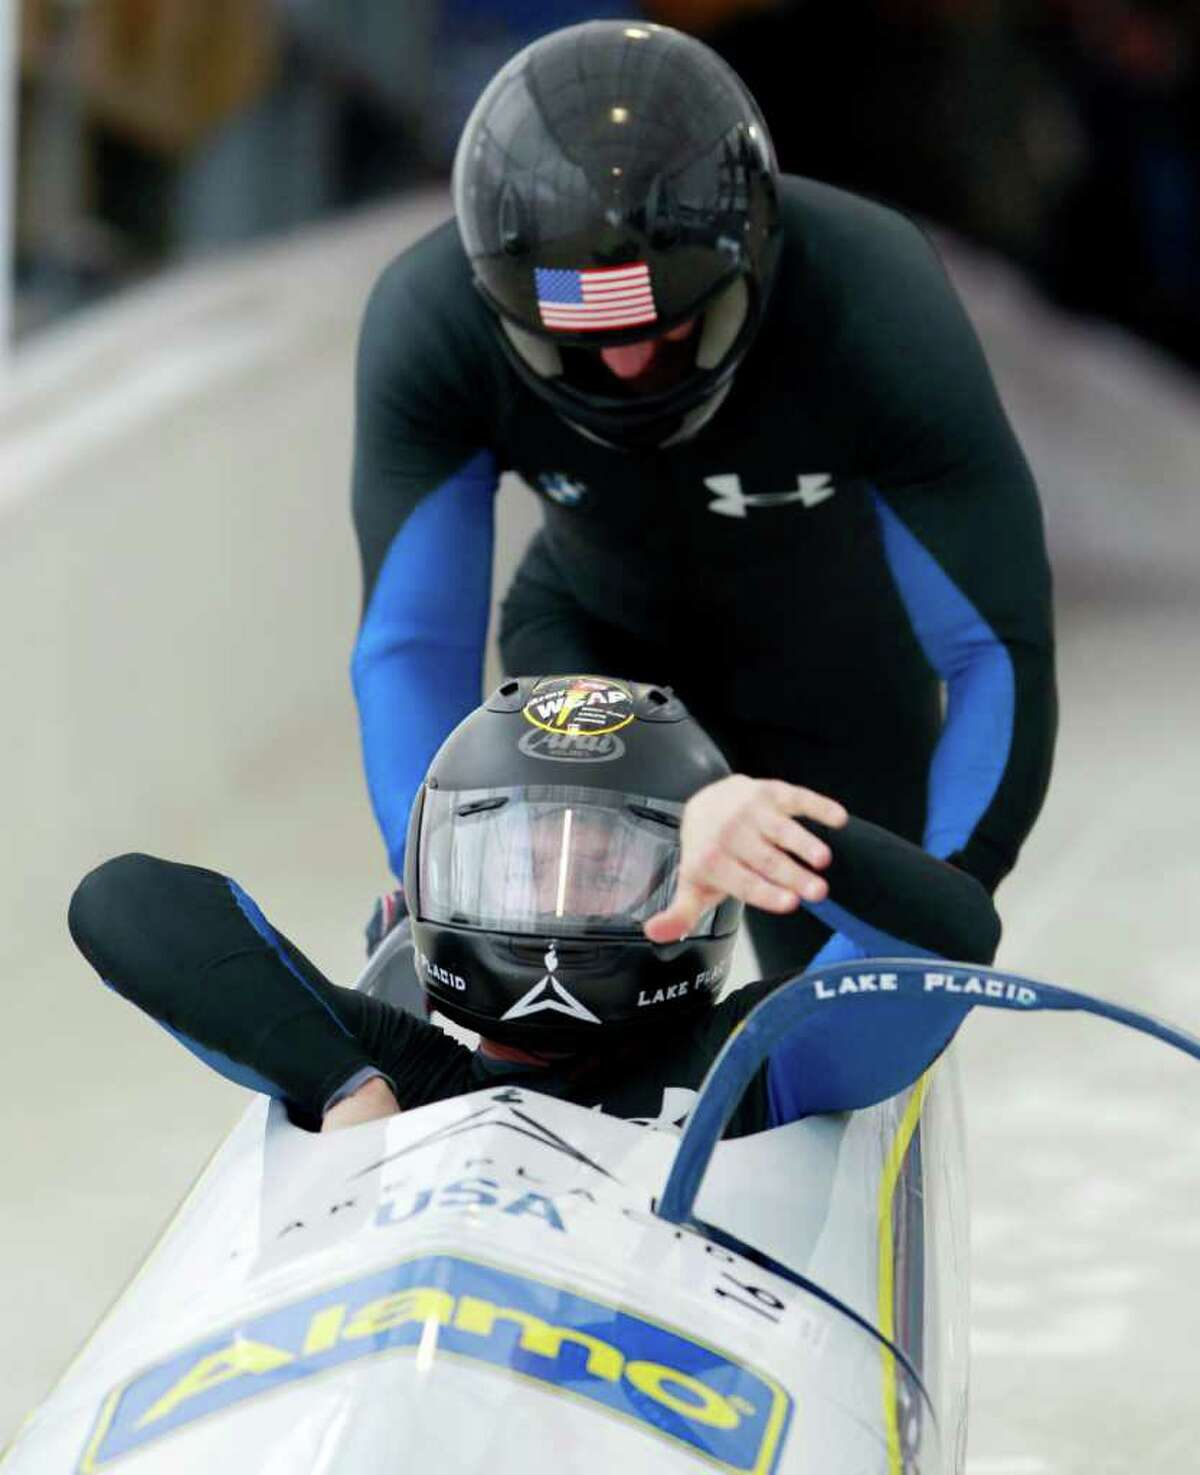 USA's John Napier, front, and Christopher Fogt start their first heat in the men's two-man bobsled world championships in Lake Placid, N.Y., on Saturday, Feb. 18, 2012. (AP Photo/Mike Groll)